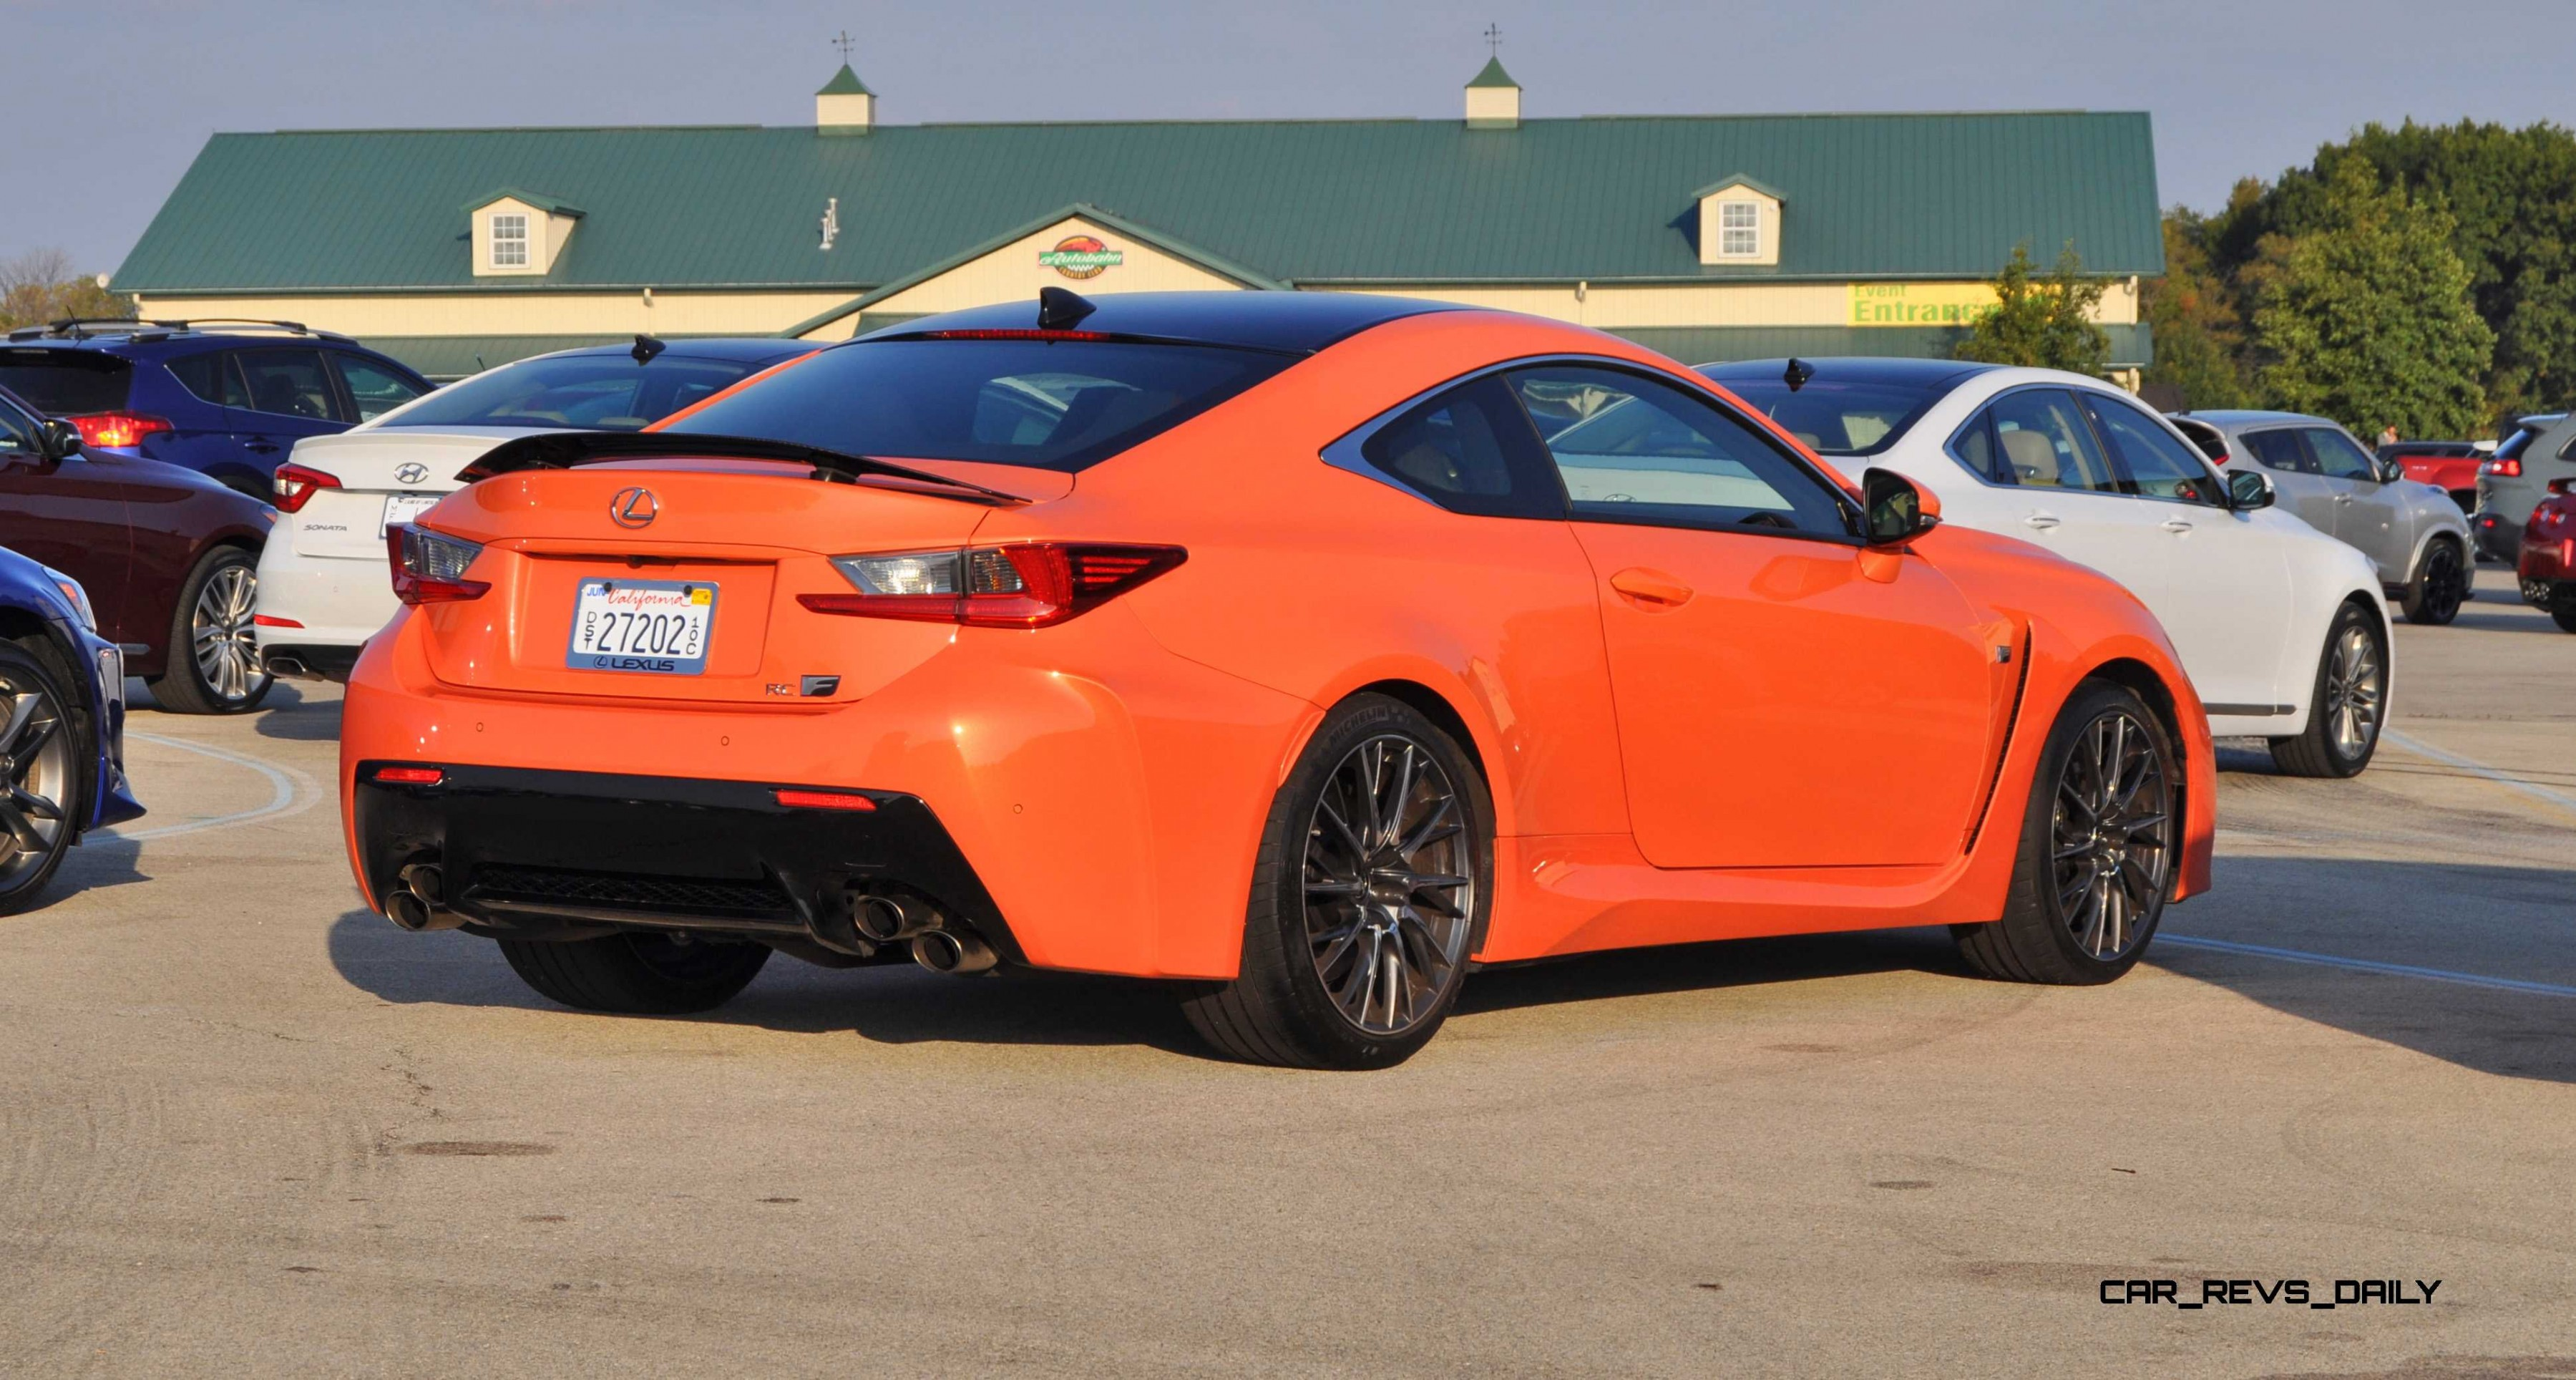 Best Of Awards 2015 Lexus Rc F Review In 3 Videos 170